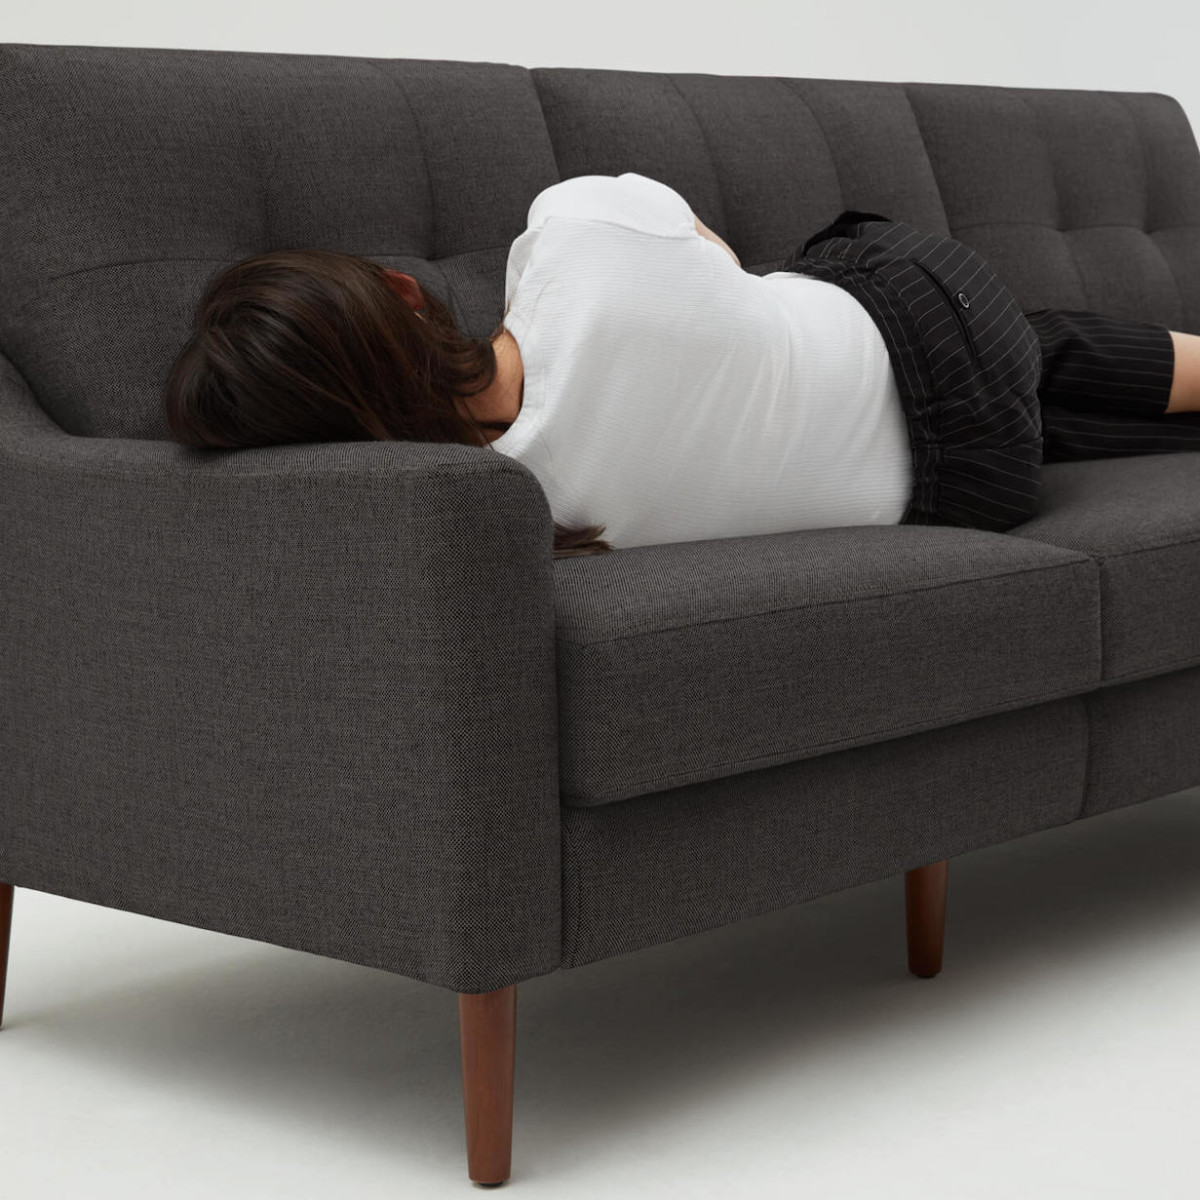 Burrow Nomad Sofa Modular Couch has a built-in USB charger and power cord